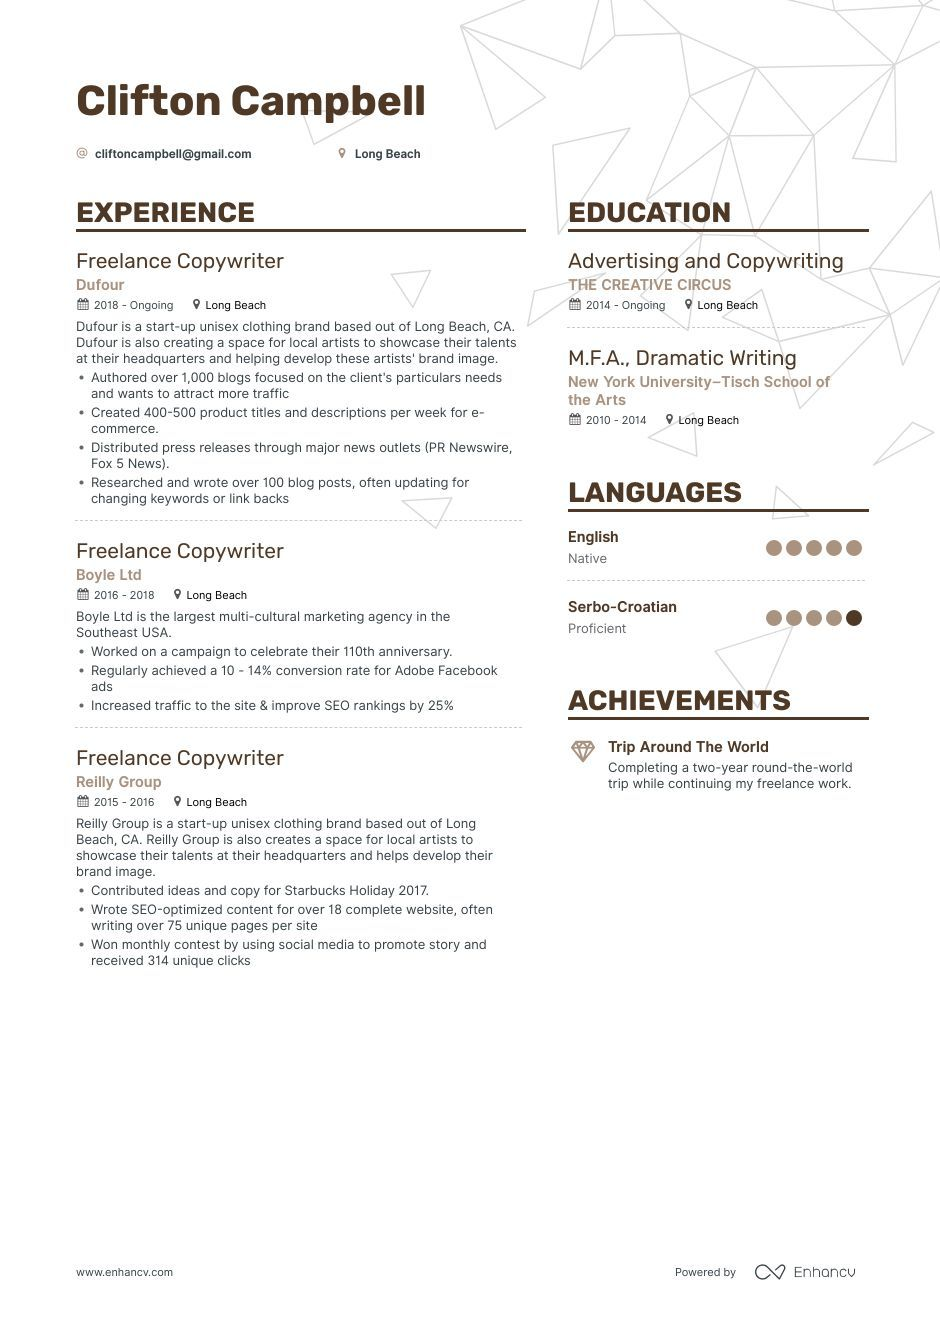 Top Freelance Copywriter Resume Examples Samples For 2020 Resume Examples Copywriting Resume